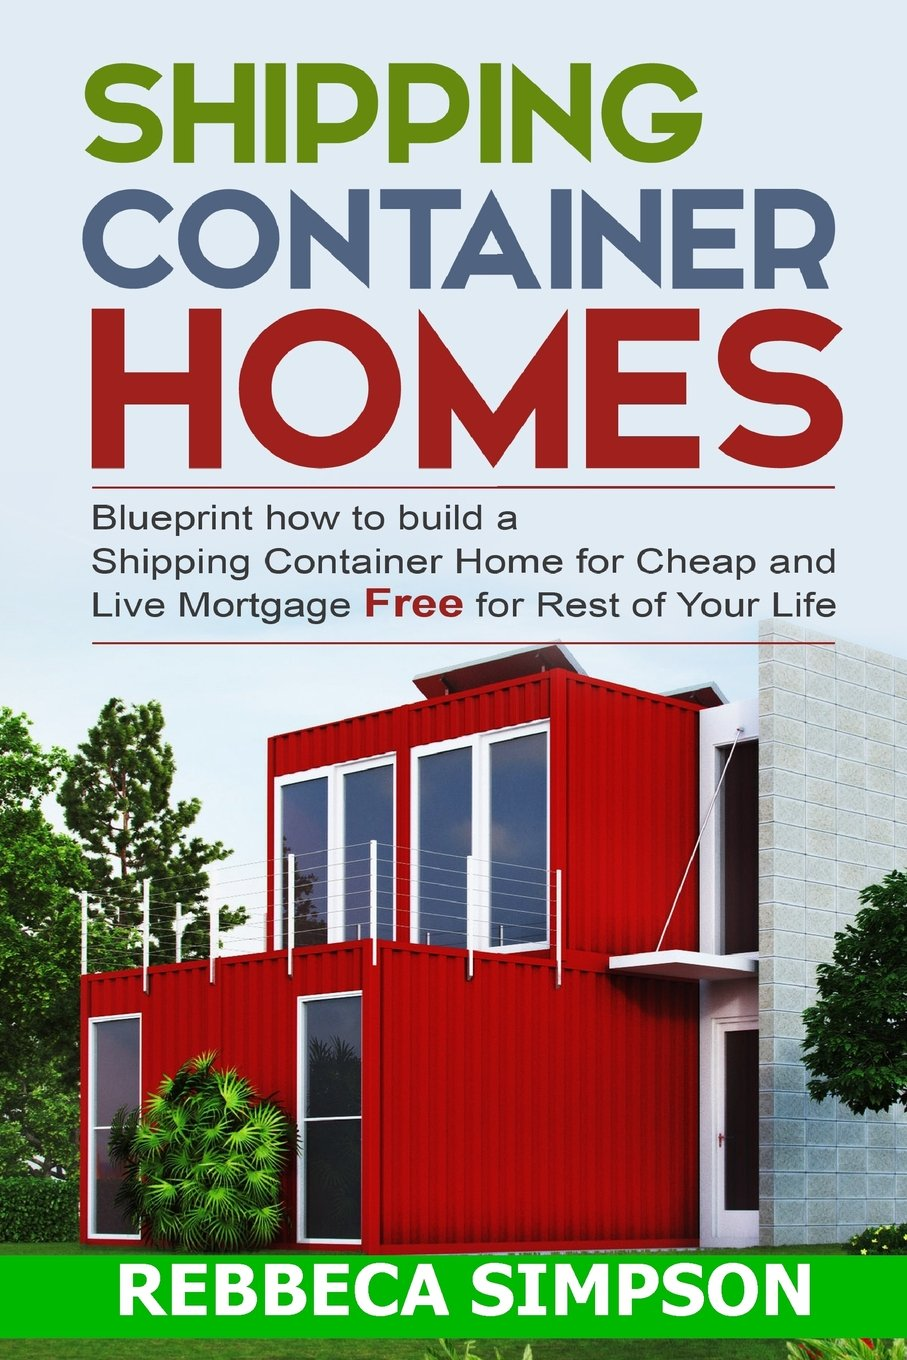 Shipping container homes blueprint how to build a shipping shipping container homes blueprint how to build a shipping container home for cheap and live mortgage free for rest of your life rebbeca simpson malvernweather Image collections